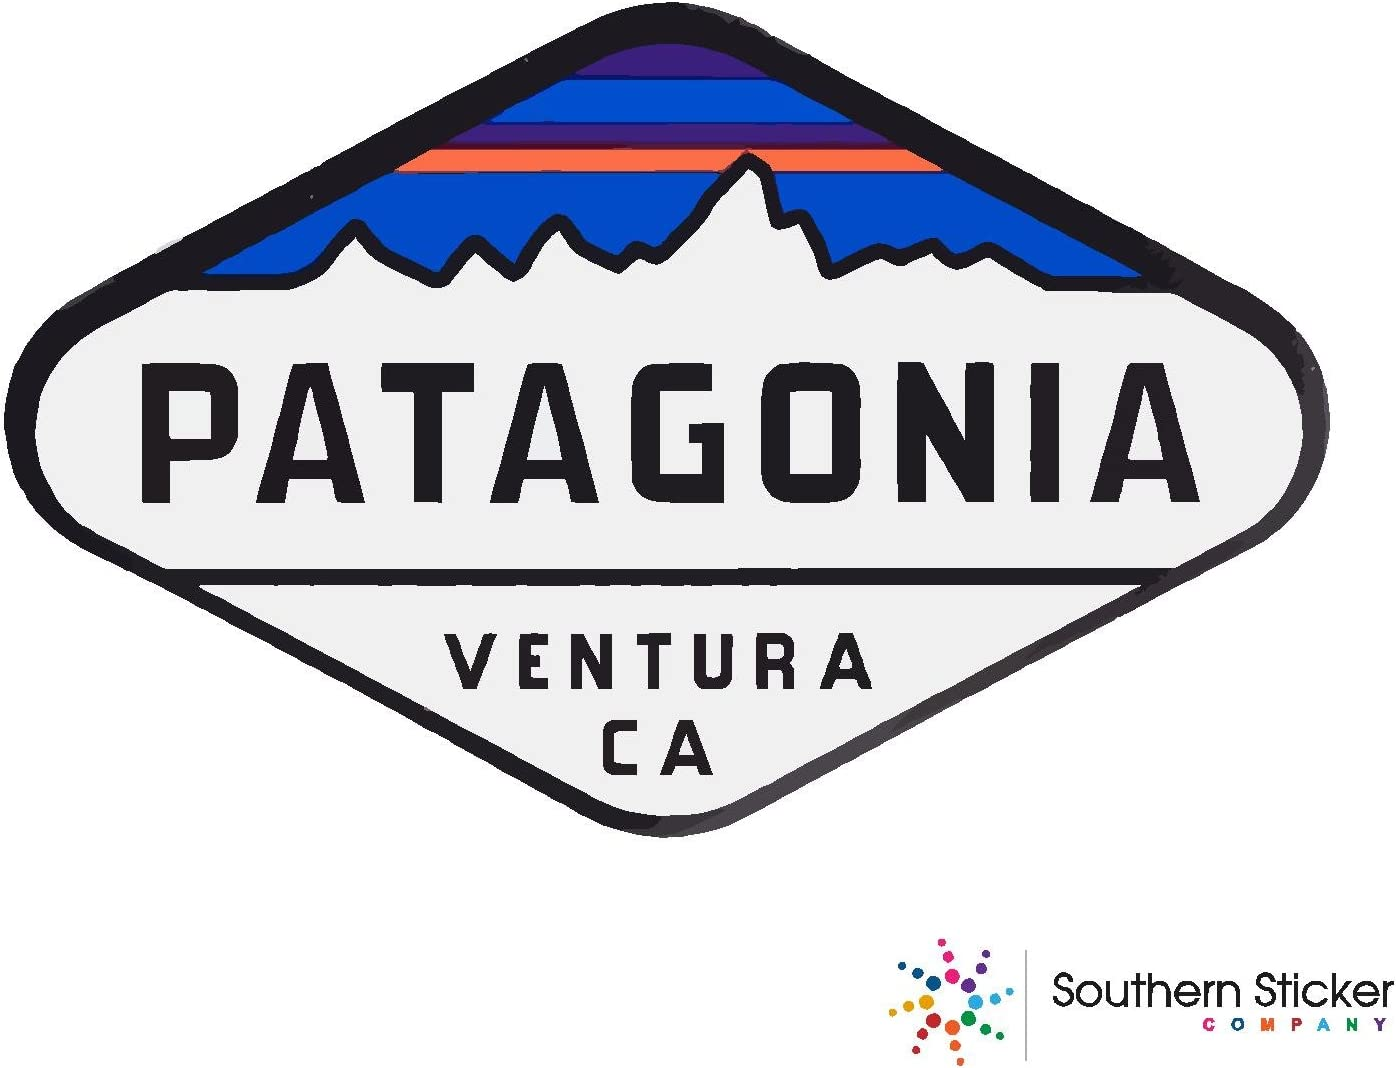 ExpressDecor Oval Patagonia Ventura CA Text Size 4x5.5 inches Made and Shipped in USA USA Flag Funny Stickers for pro Union Lunch Box Tool Box Symbol Window Travel Jeep Adventure Wanderlust